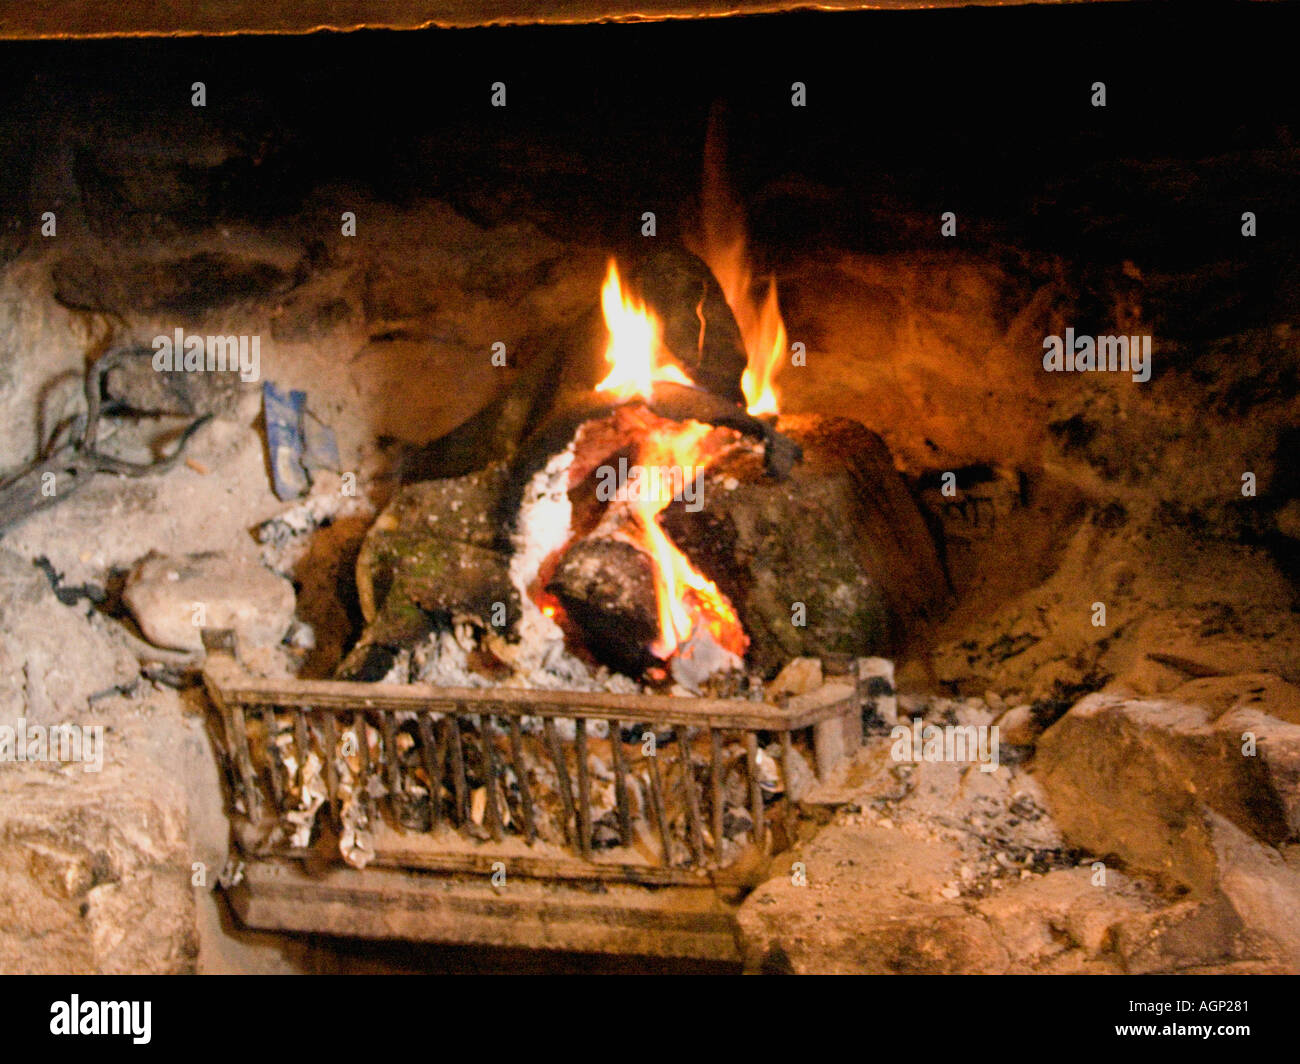 This Fire Burns All Year Long at the Warren House Inn, Dartmoor National Park, Devon, England, UK, - Stock Image